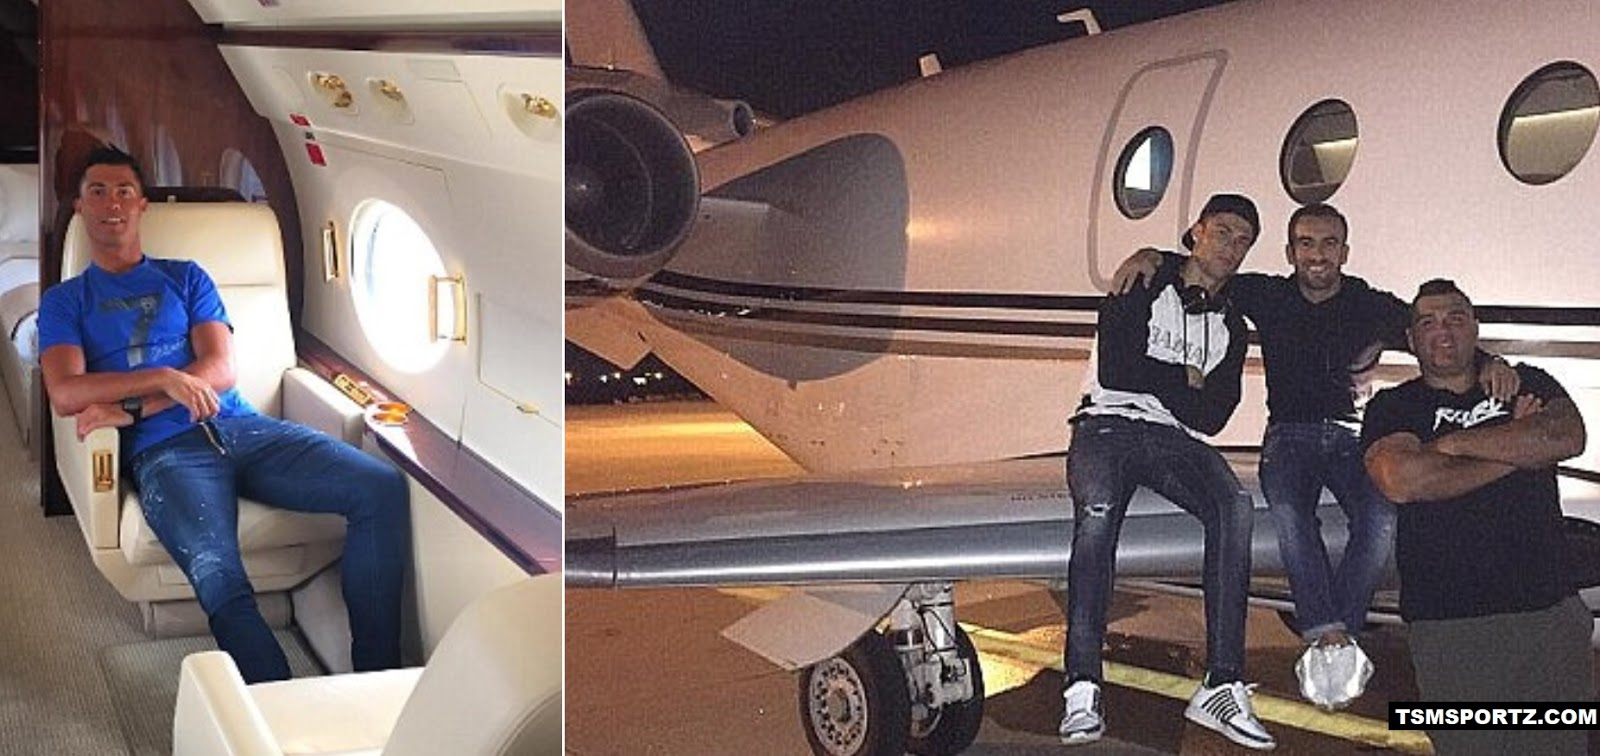 Ronaldo owns a private jet price at £15 million